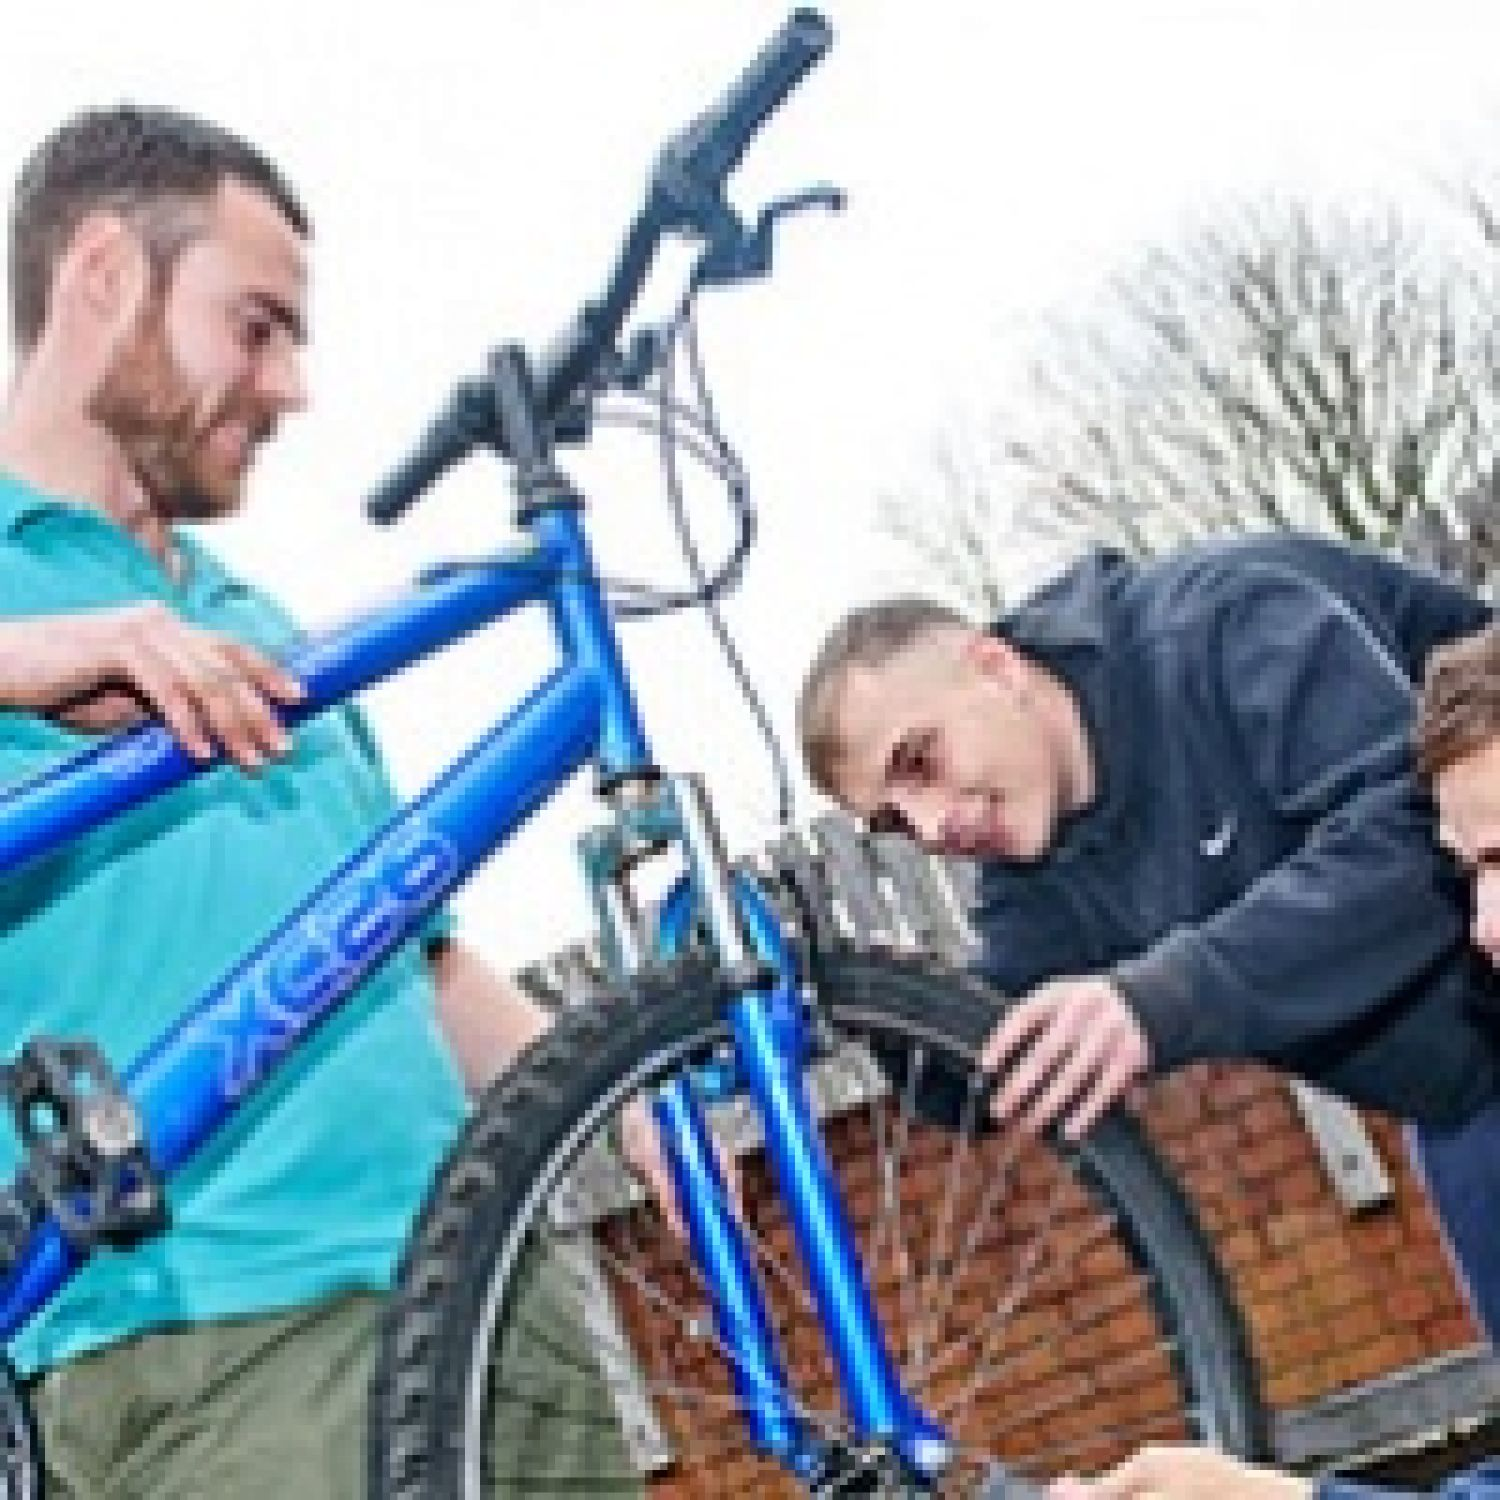 Cycle Recycle Scheme empowers people to look after their bike